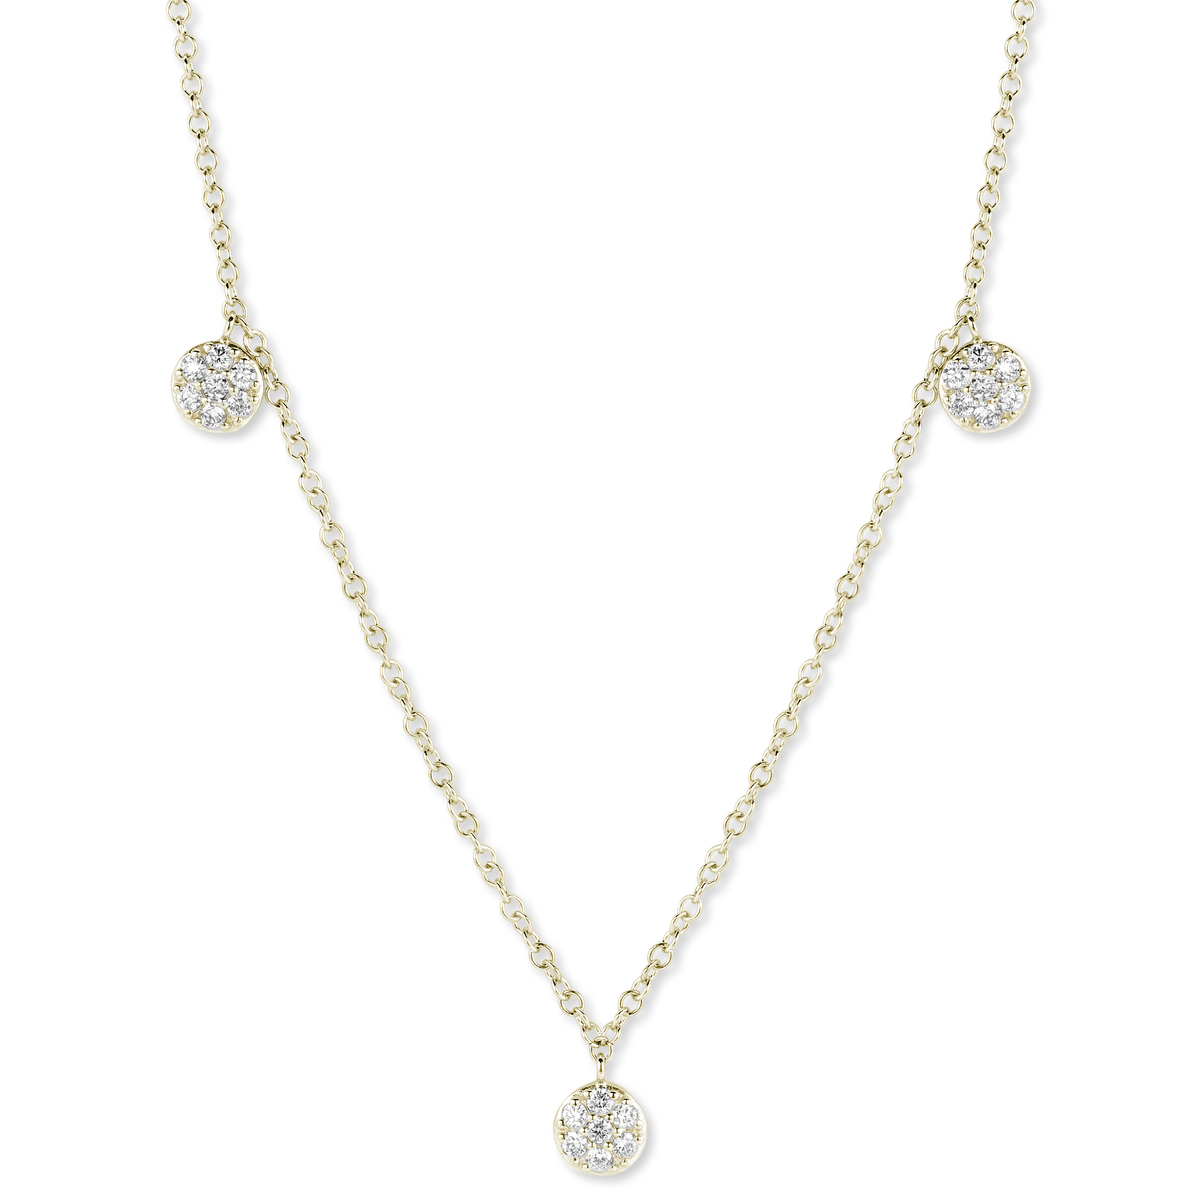 eolo necklace in yellow gold